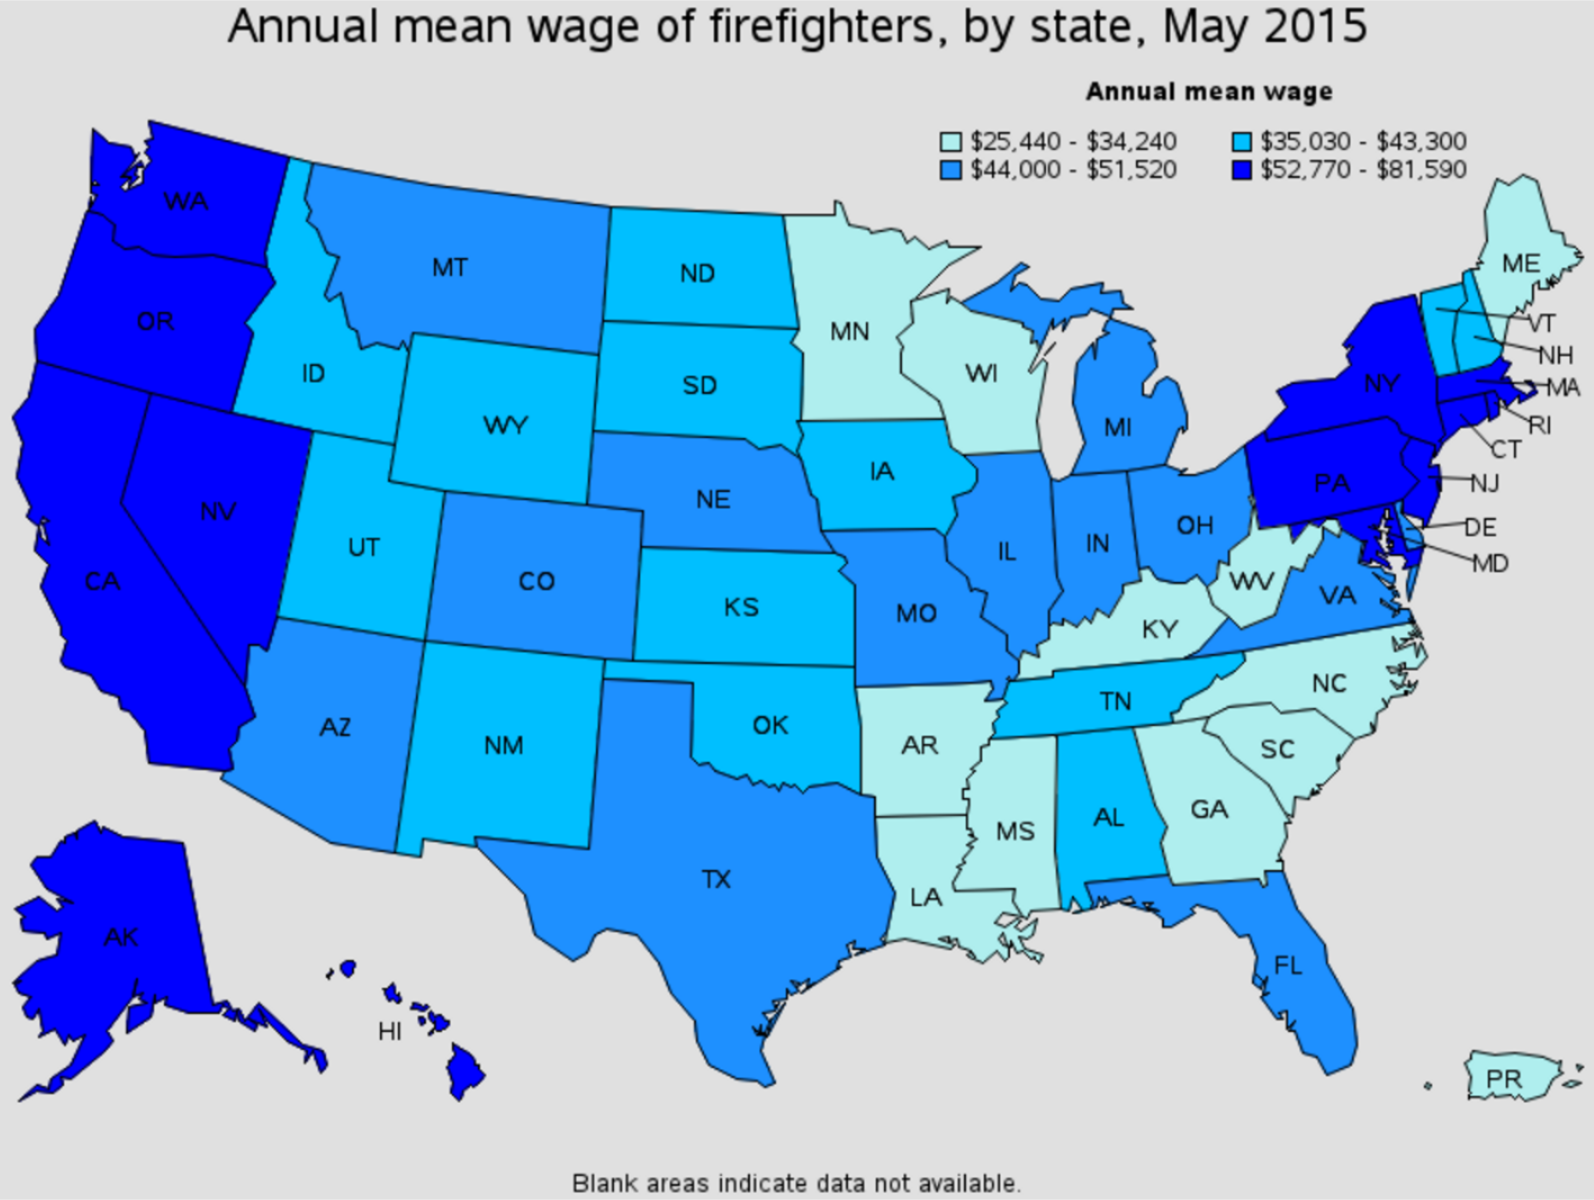 firefighter average salary by state Oakland California